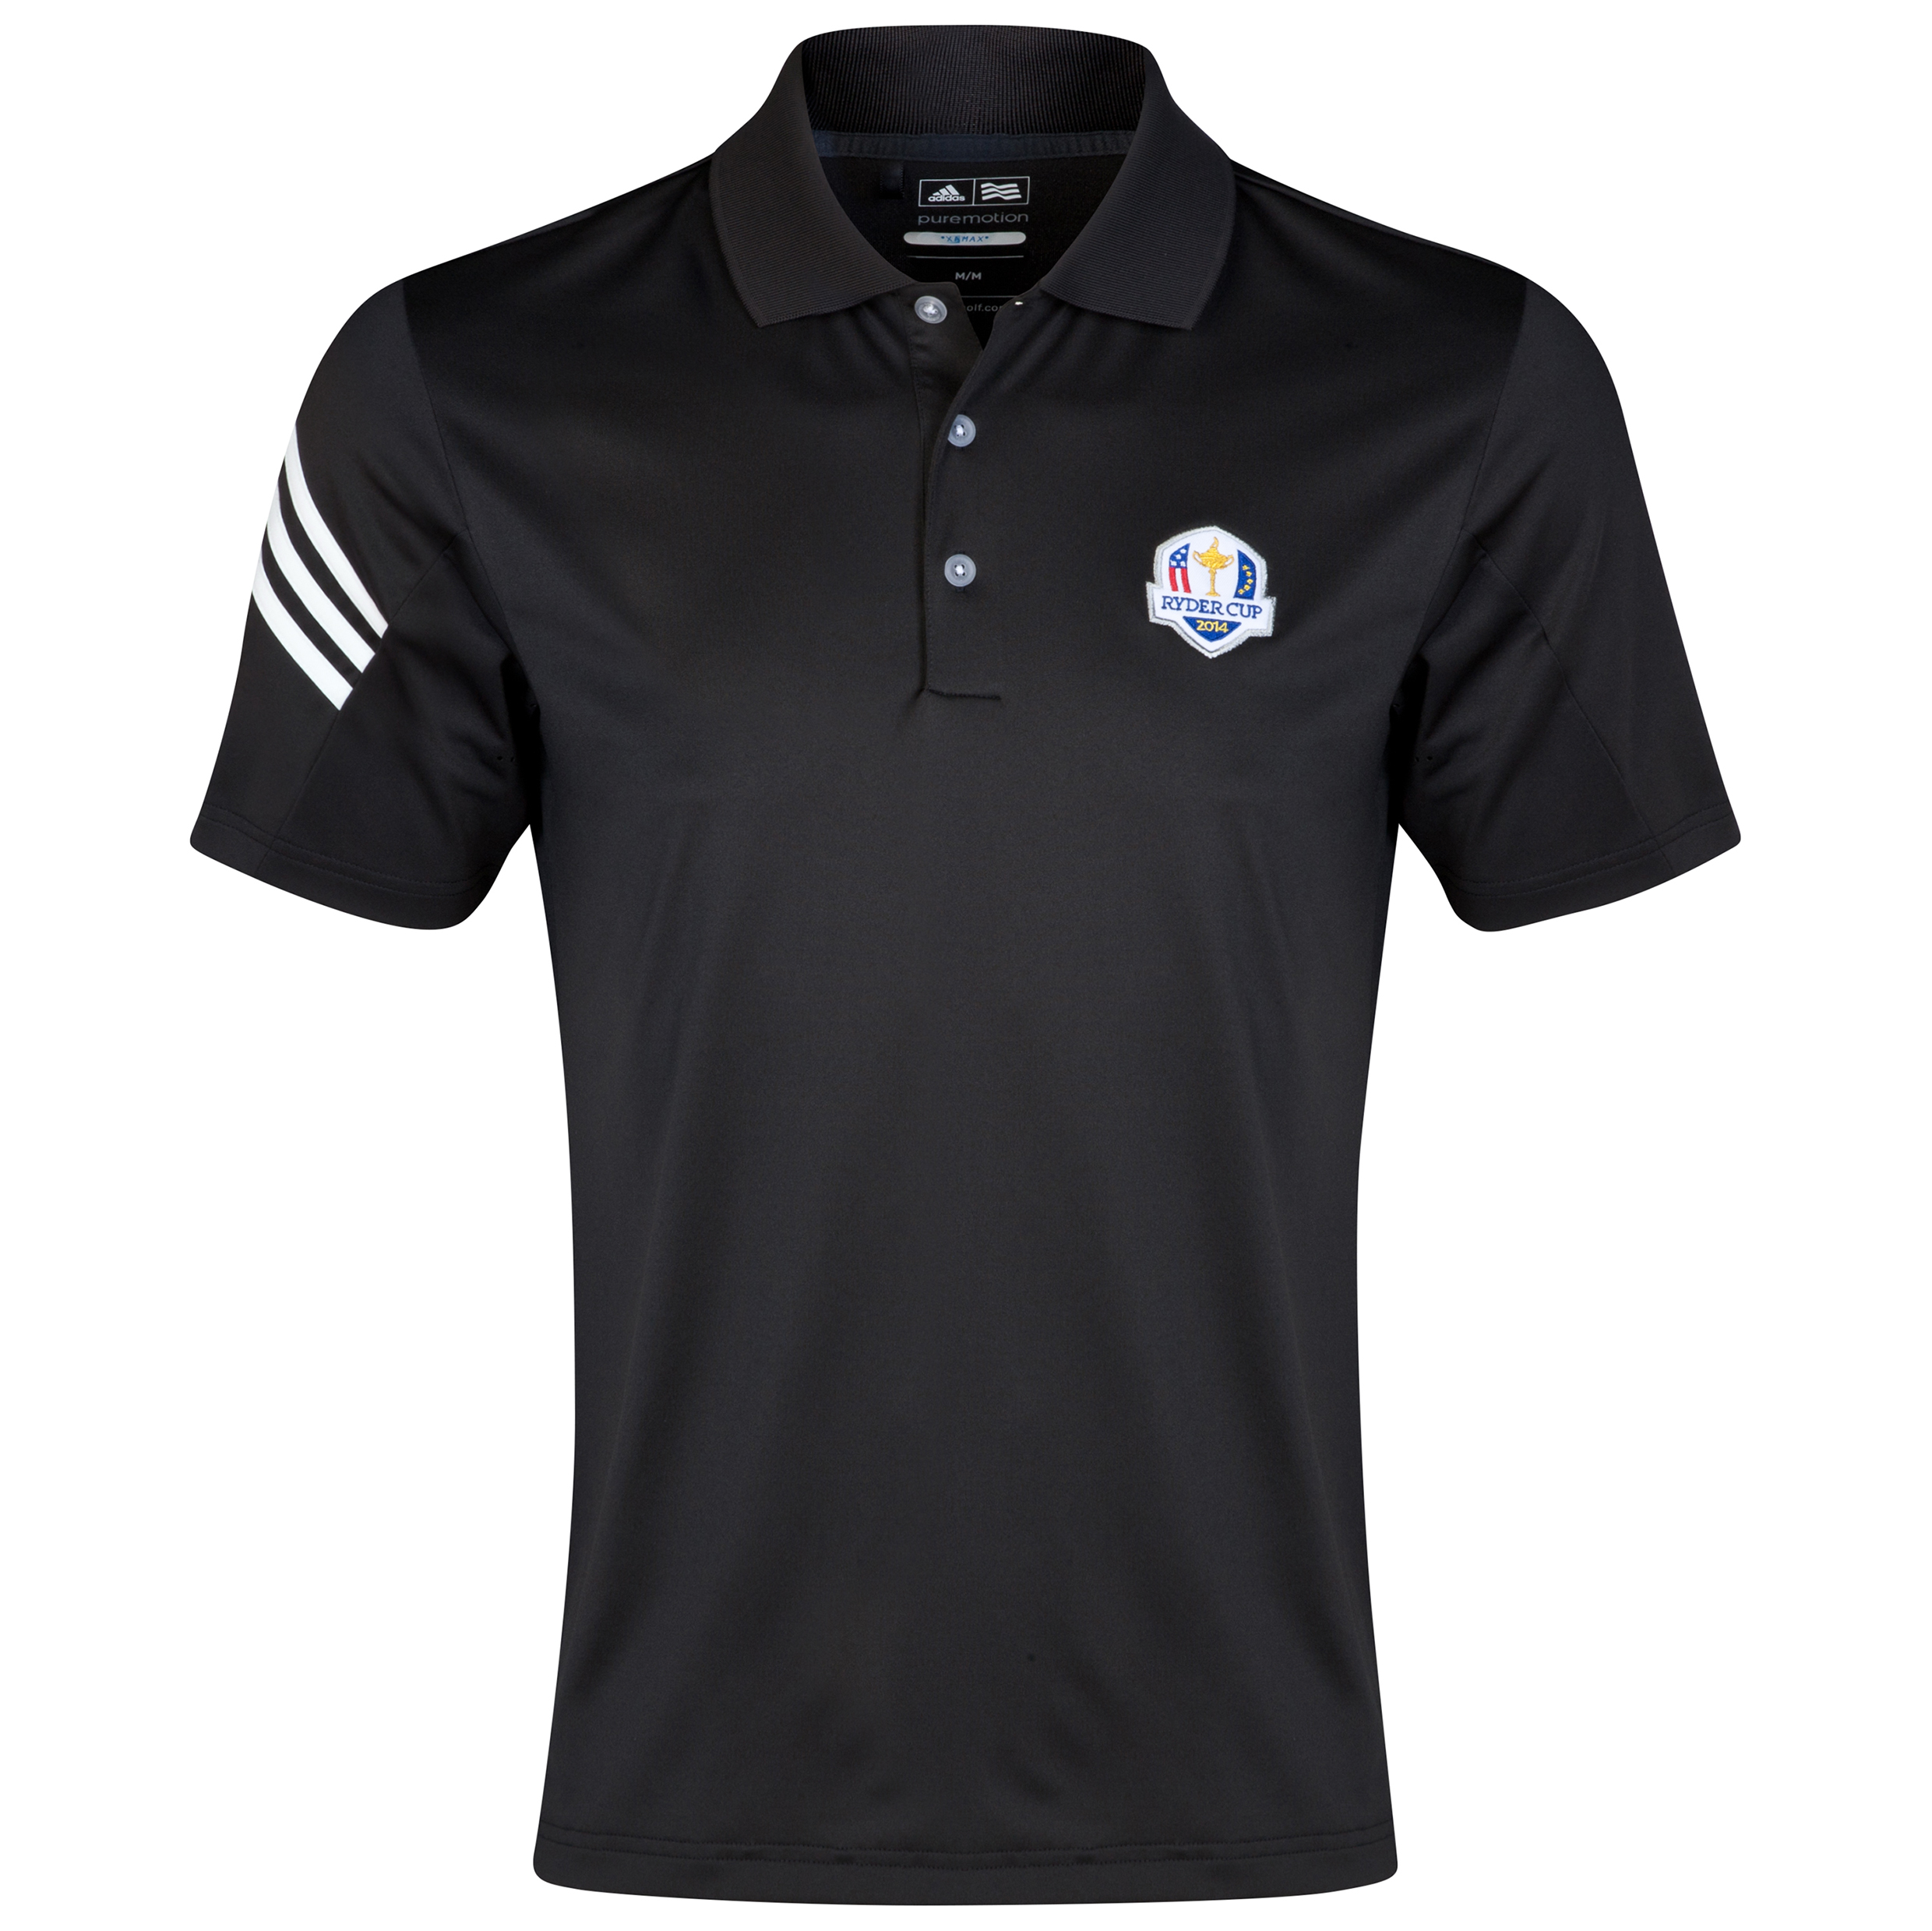 The 2014 Ryder Cup adidas ClimaLite 3-Stripes Polo Black